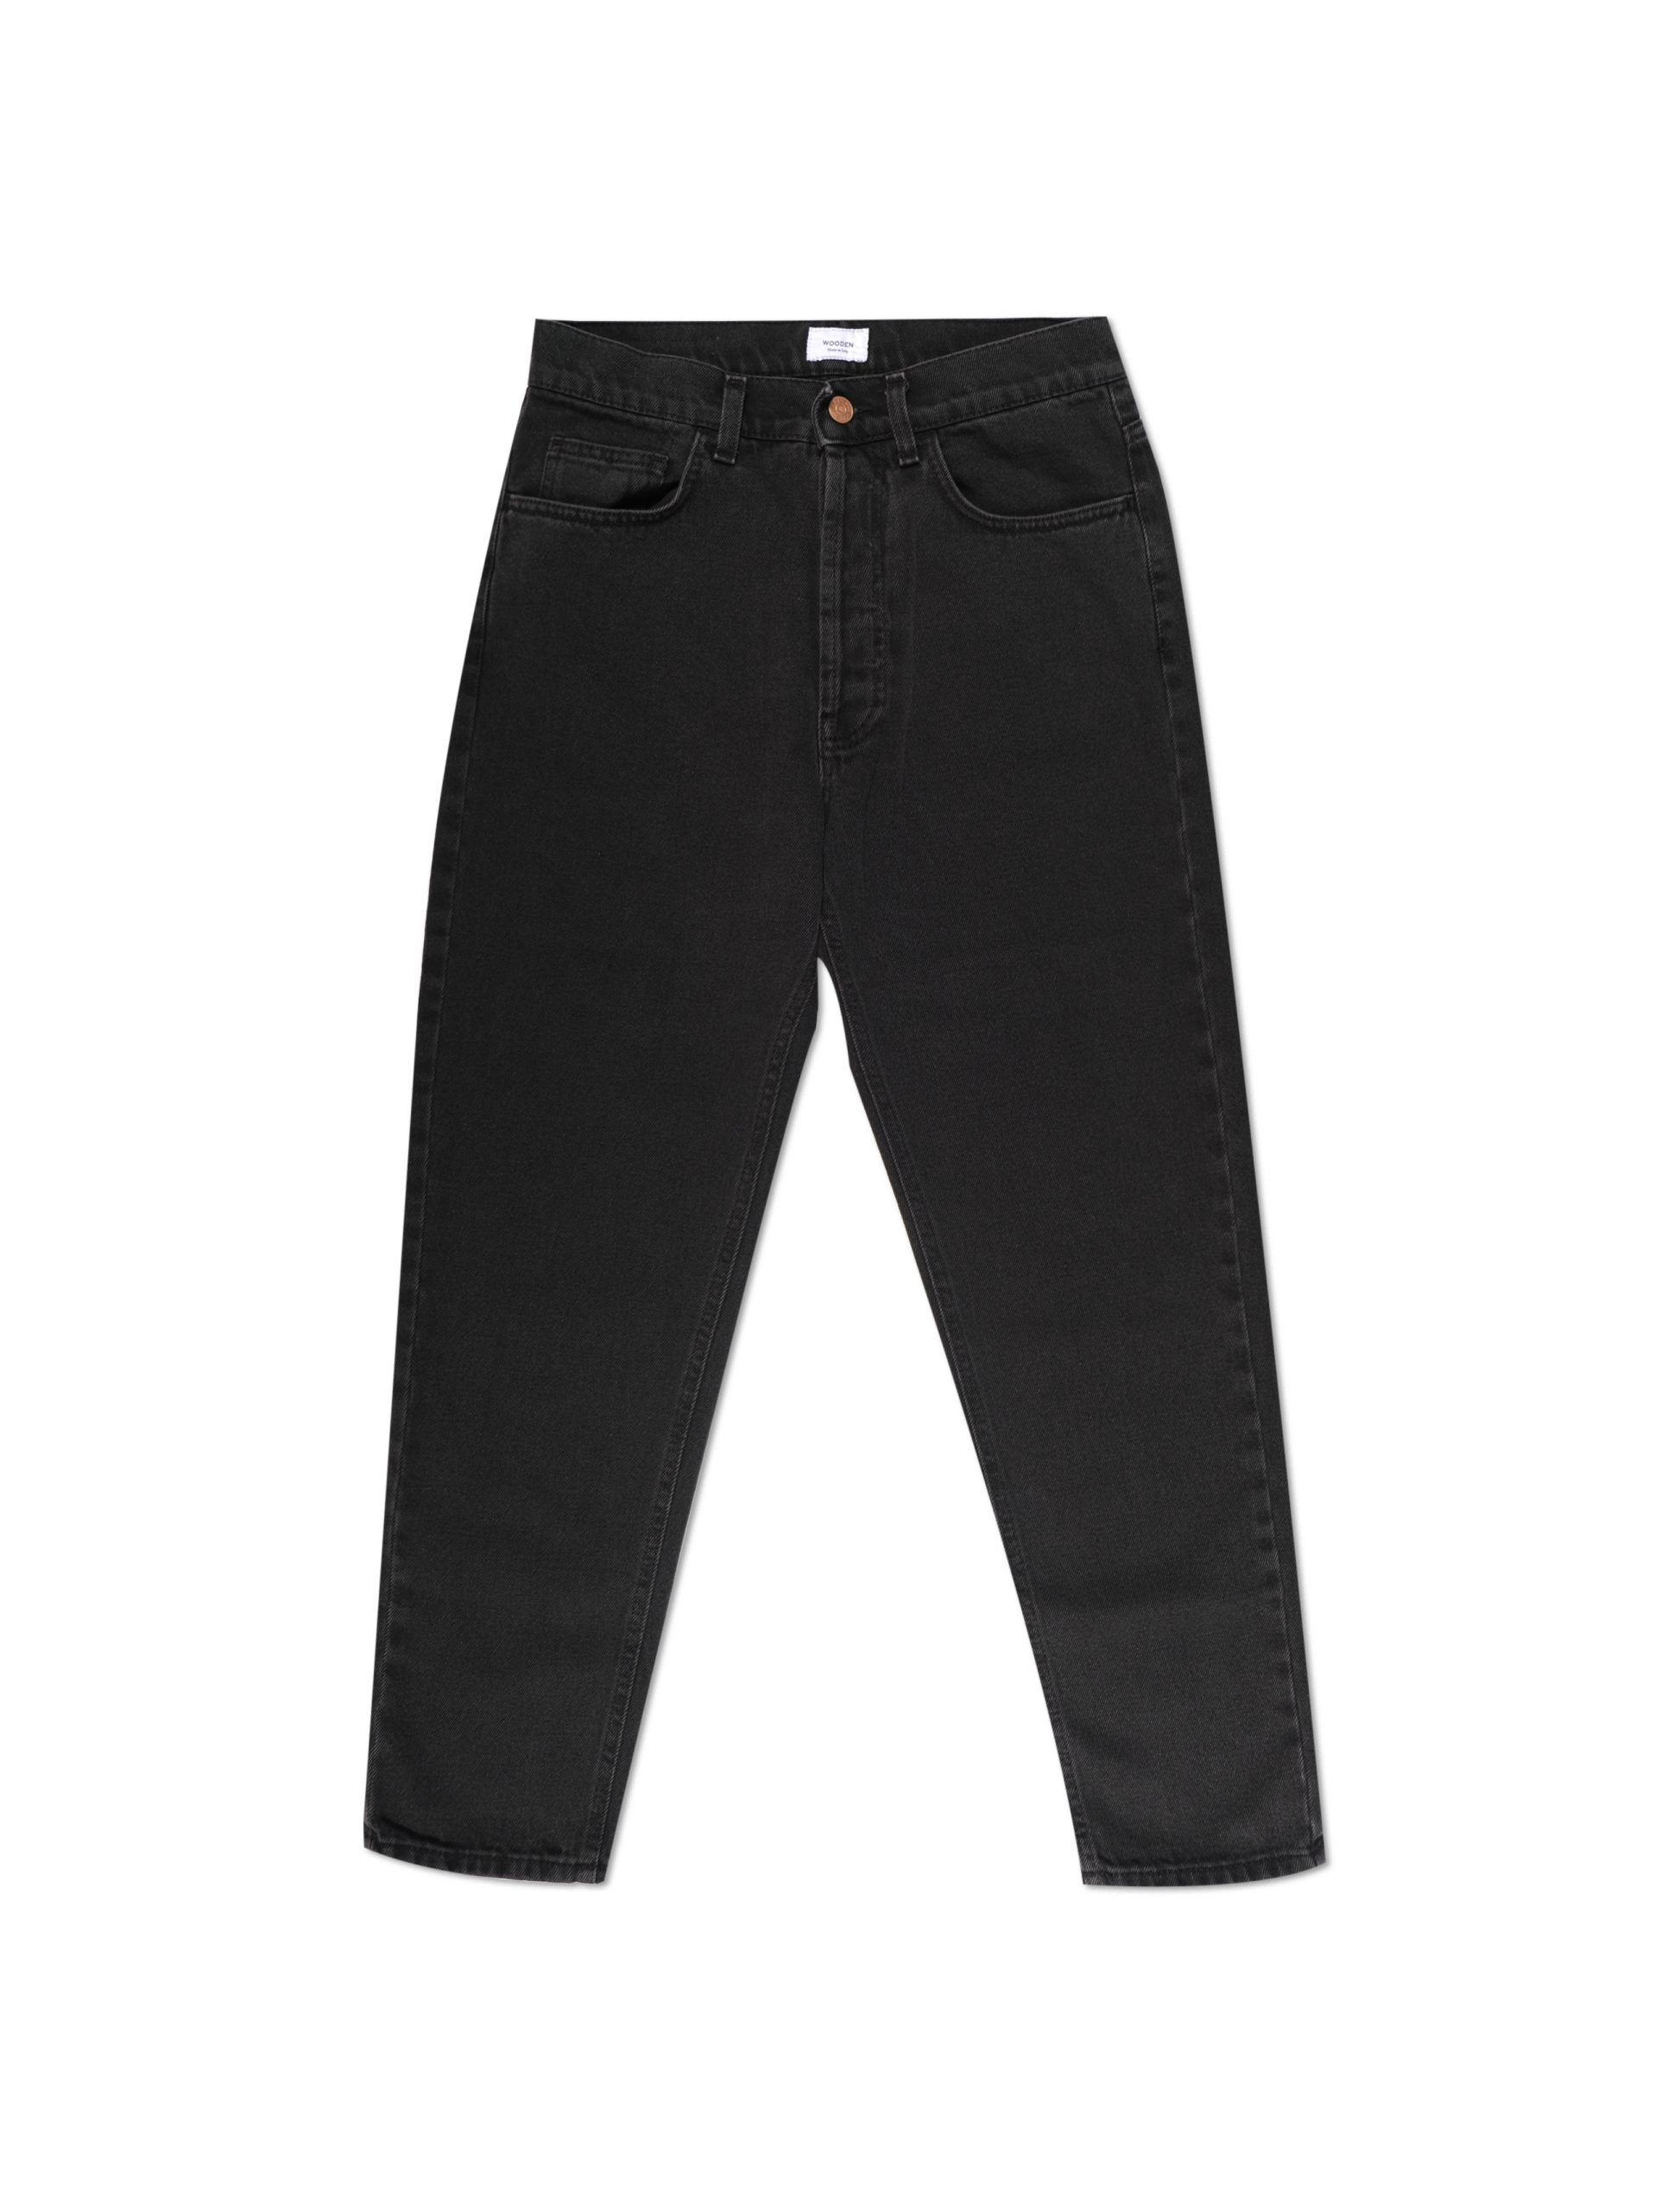 Jeans Replica 11 Vintage Black | Wooden Store